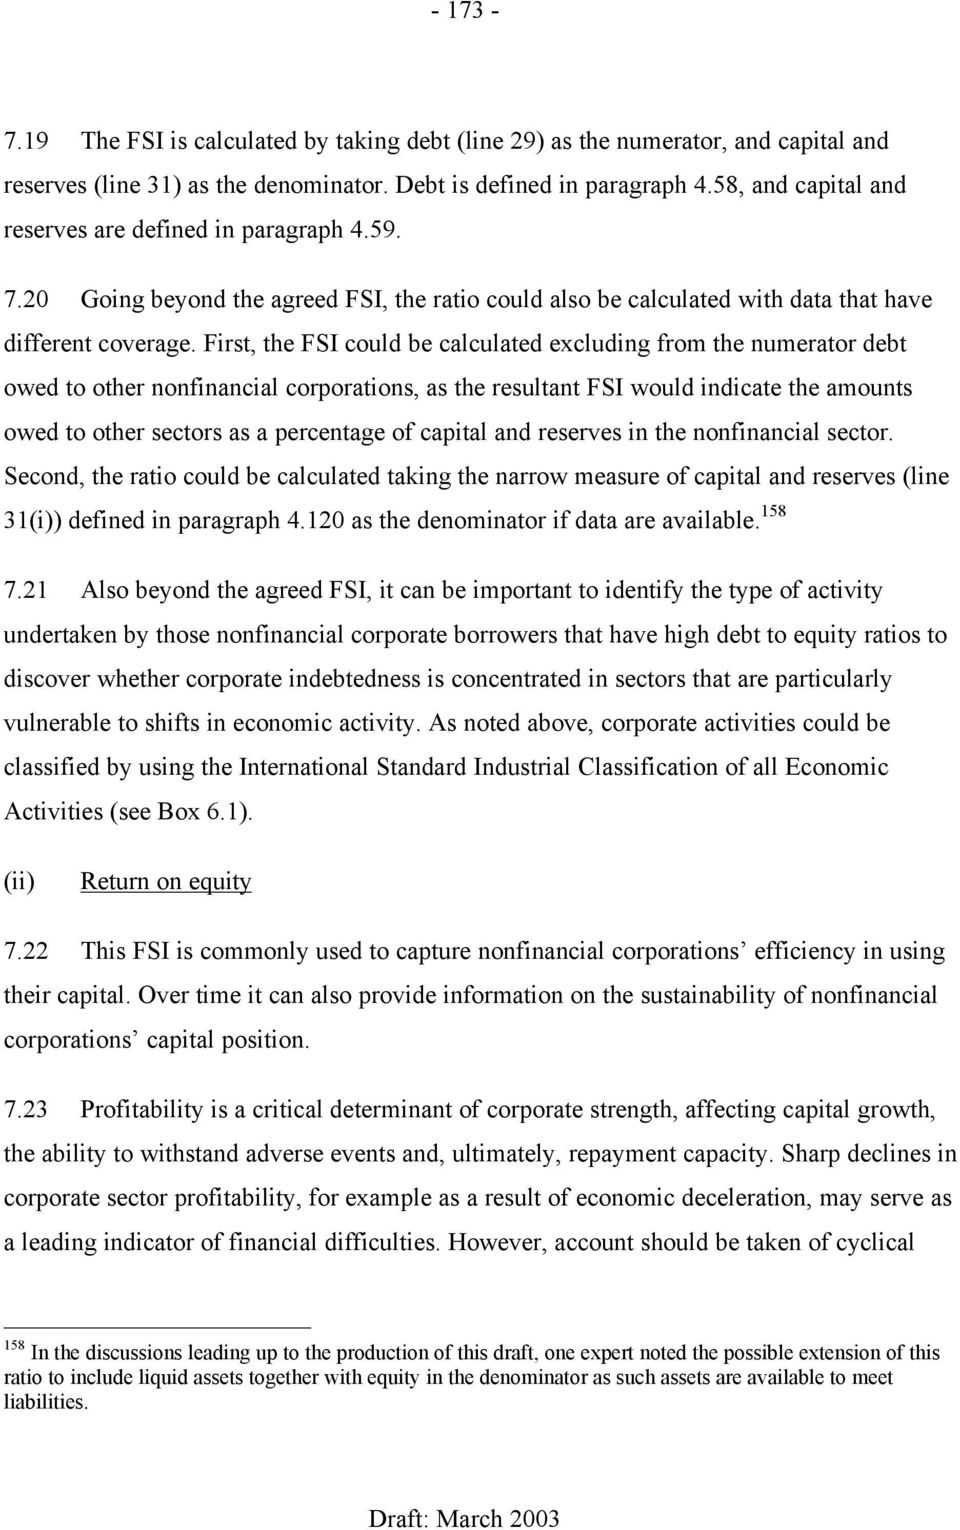 First, the FSI could be calculated excluding from the numerator debt owed to other nonfinancial corporations, as the resultant FSI would indicate the amounts owed to other sectors as a percentage of